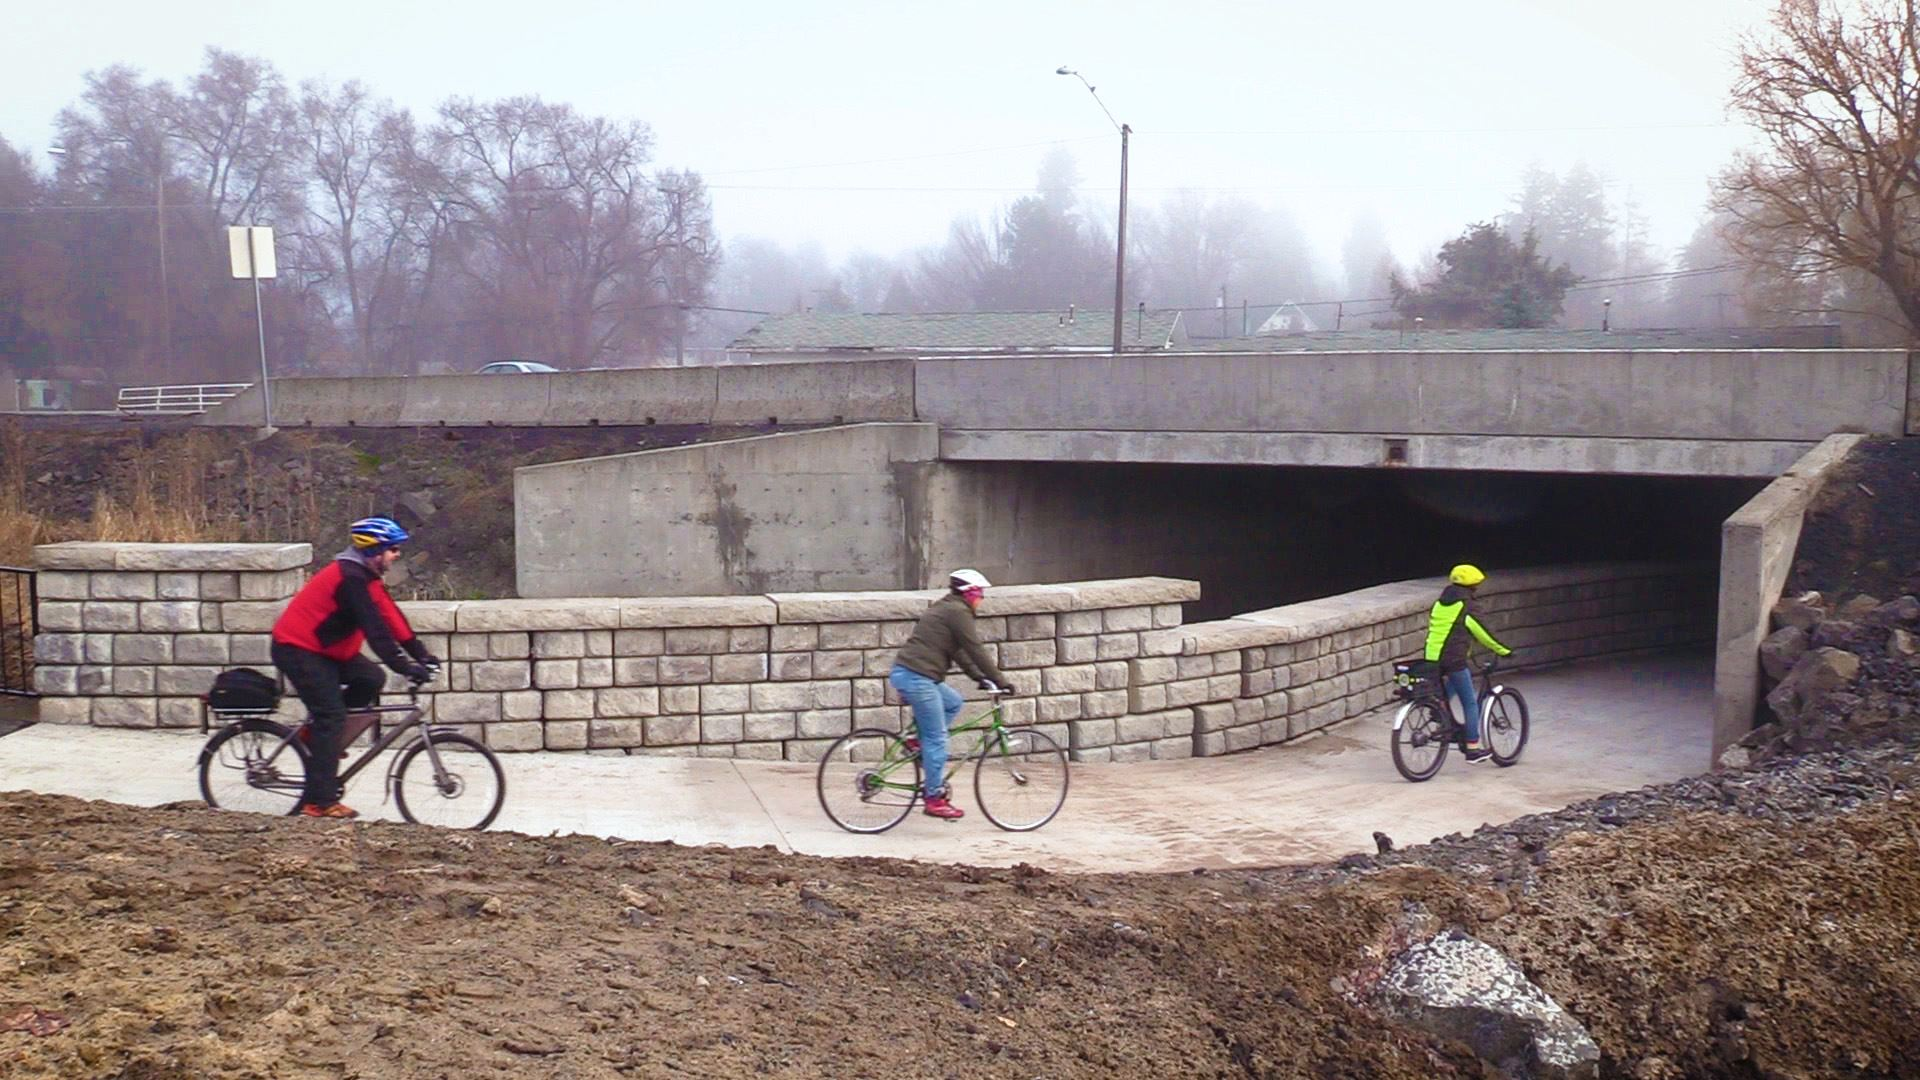 Cyclists using the Highway 8 Underpass